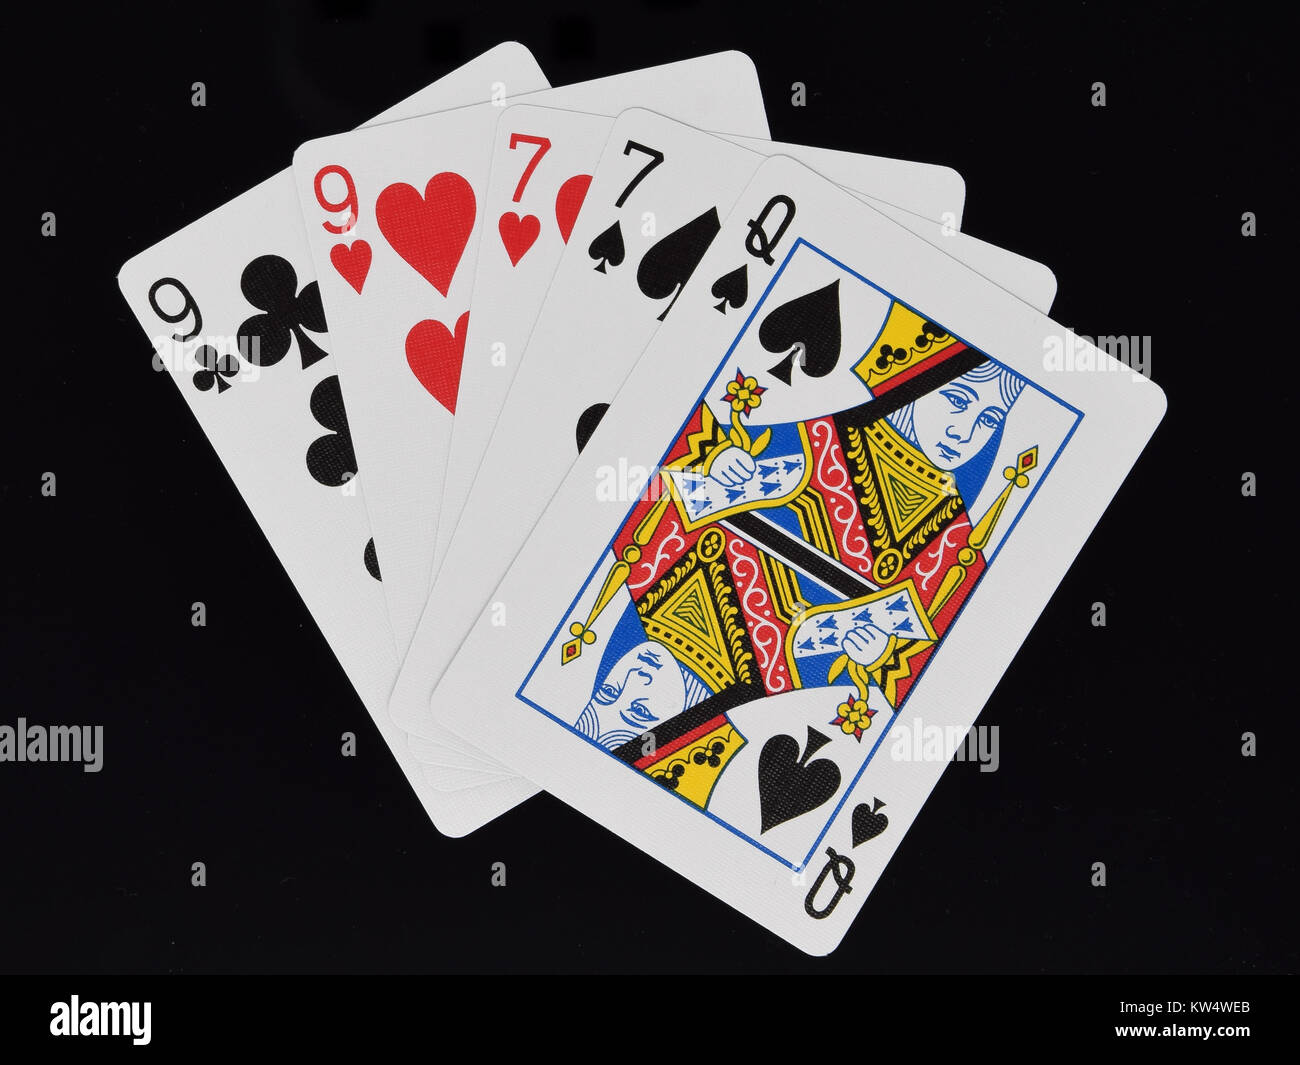 Two Pairs hand in poker card game - Stock Image